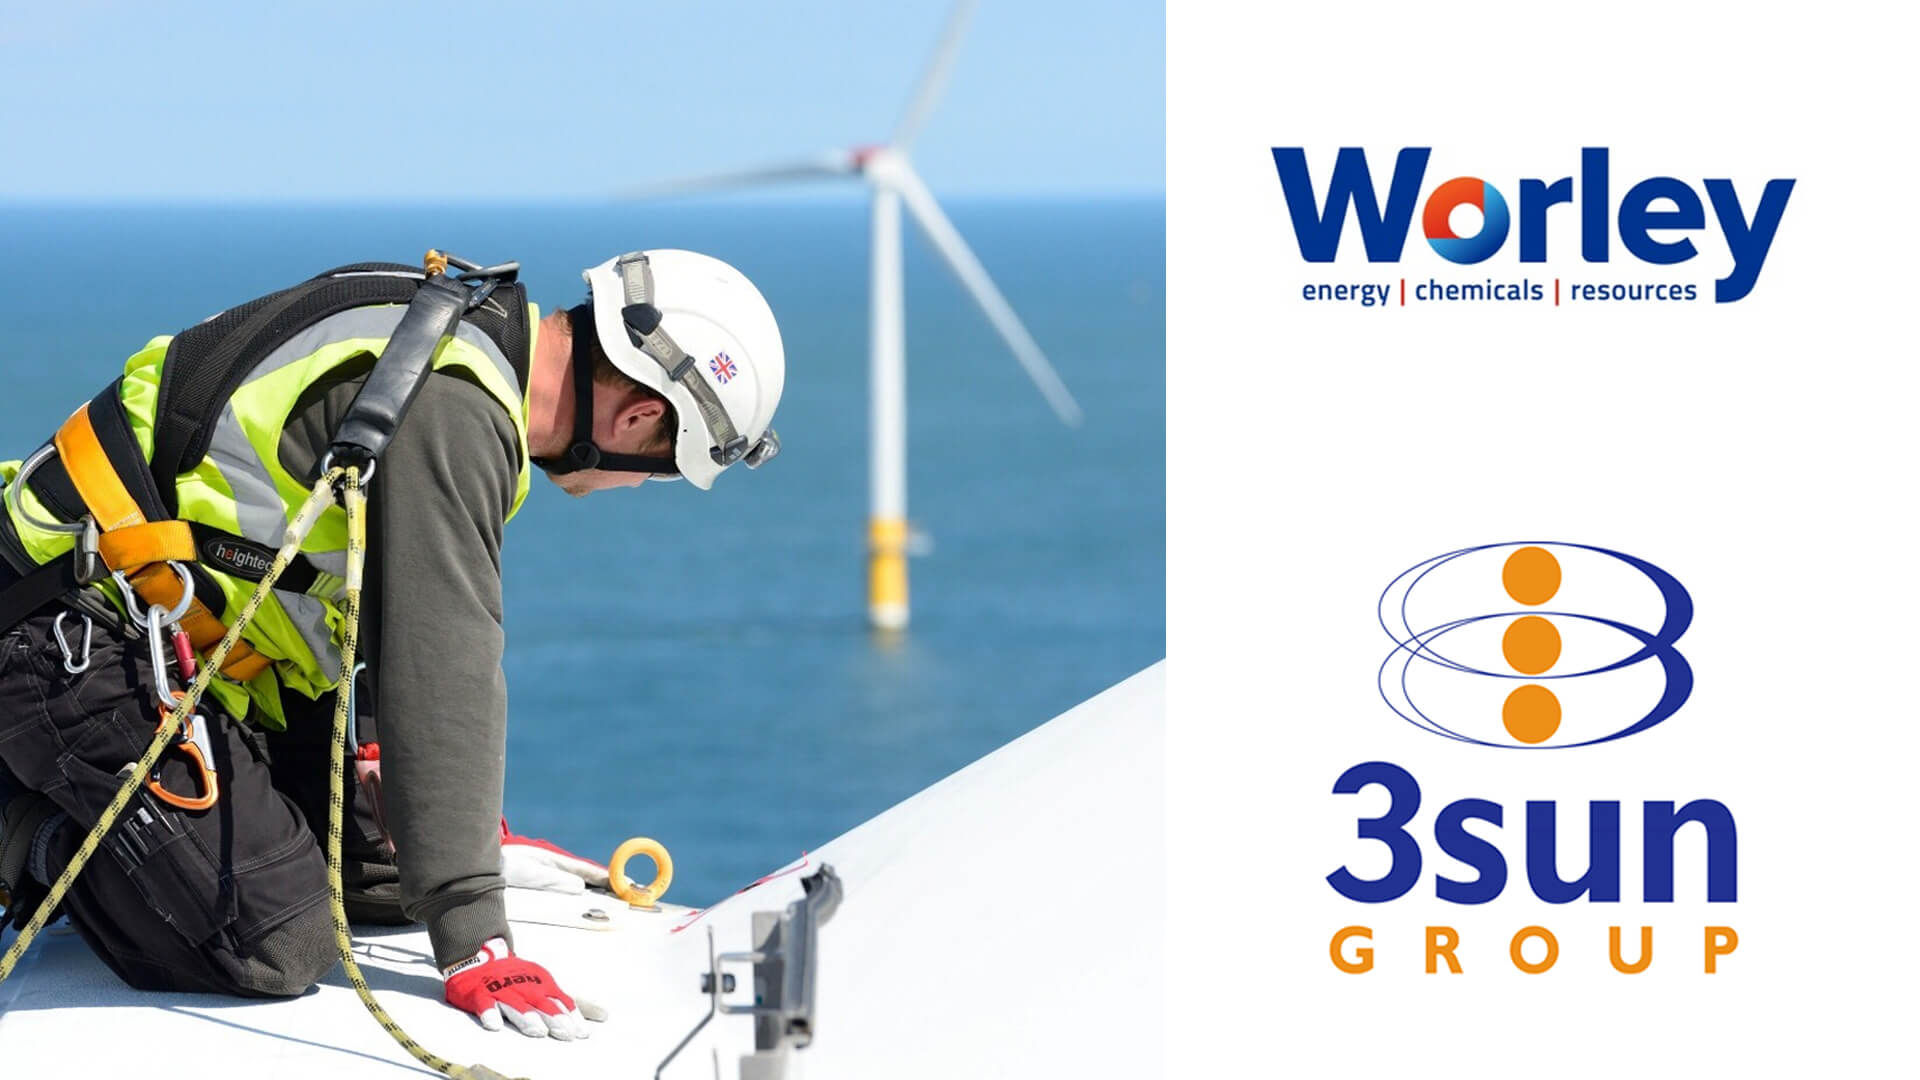 Worley confirms acquisition of offshore wind specialist 3sun Group